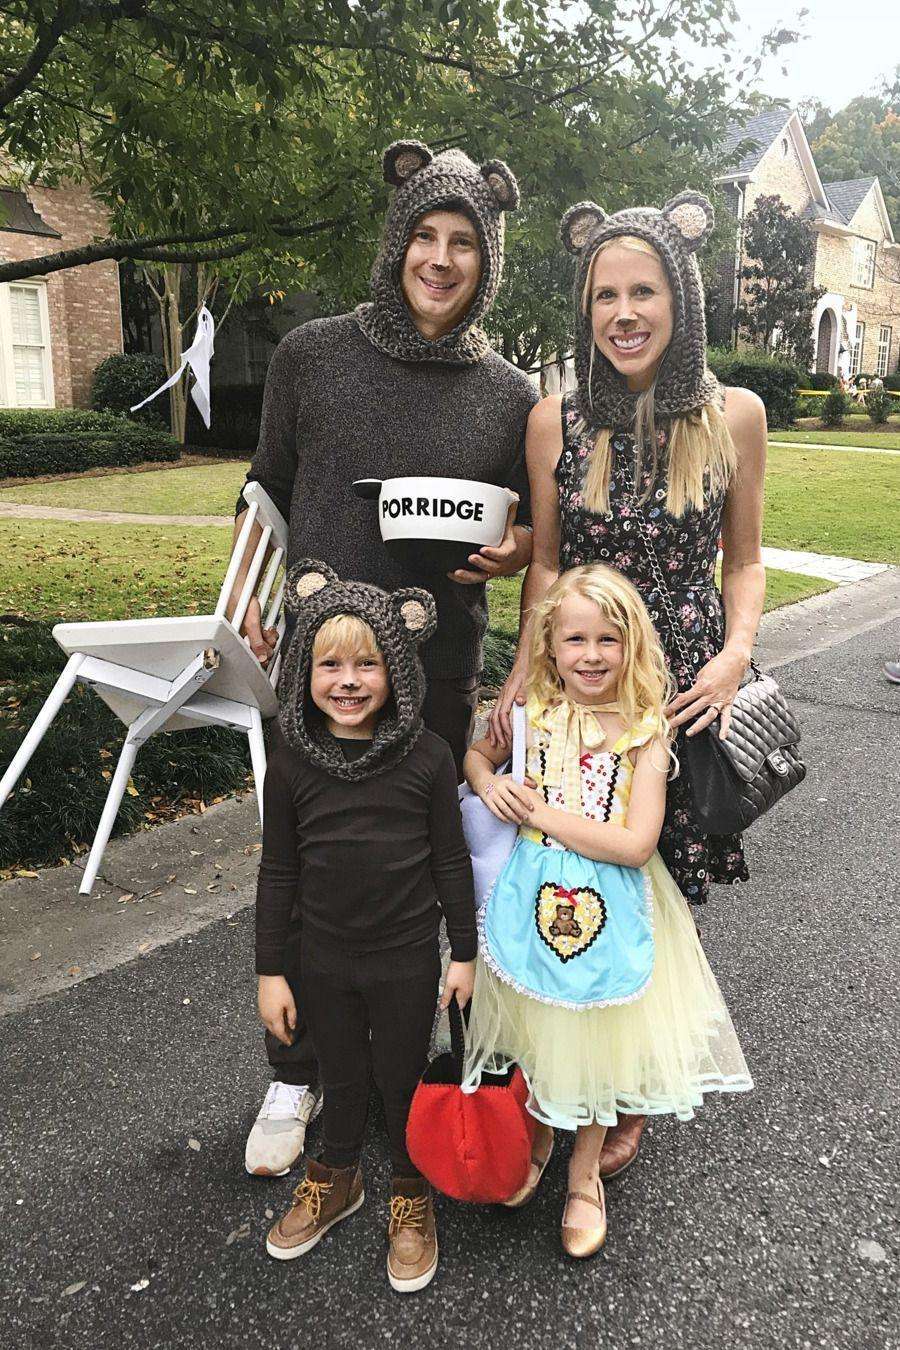 """<p>When we need Halloween costume inspo, we look to <em>Country Living</em> Editor-in-Chief Rachel Hardage Barrett! Last year, she dressed her family up as <em>Goldilocks and the Three Bears</em>, complete with a clearly-labeled bowl of porridge. Now, that's a cute idea.</p><p><a class=""""link rapid-noclick-resp"""" href=""""https://www.amazon.com/RARITY-US-Toddlers-Winter-Beanie-Coffee/dp/B07JJHWZHG?tag=syn-yahoo-20&ascsubtag=%5Bartid%7C10050.g.23785711%5Bsrc%7Cyahoo-us"""" rel=""""nofollow noopener"""" target=""""_blank"""" data-ylk=""""slk:SHOP BEAR HATS"""">SHOP BEAR HATS</a></p>"""